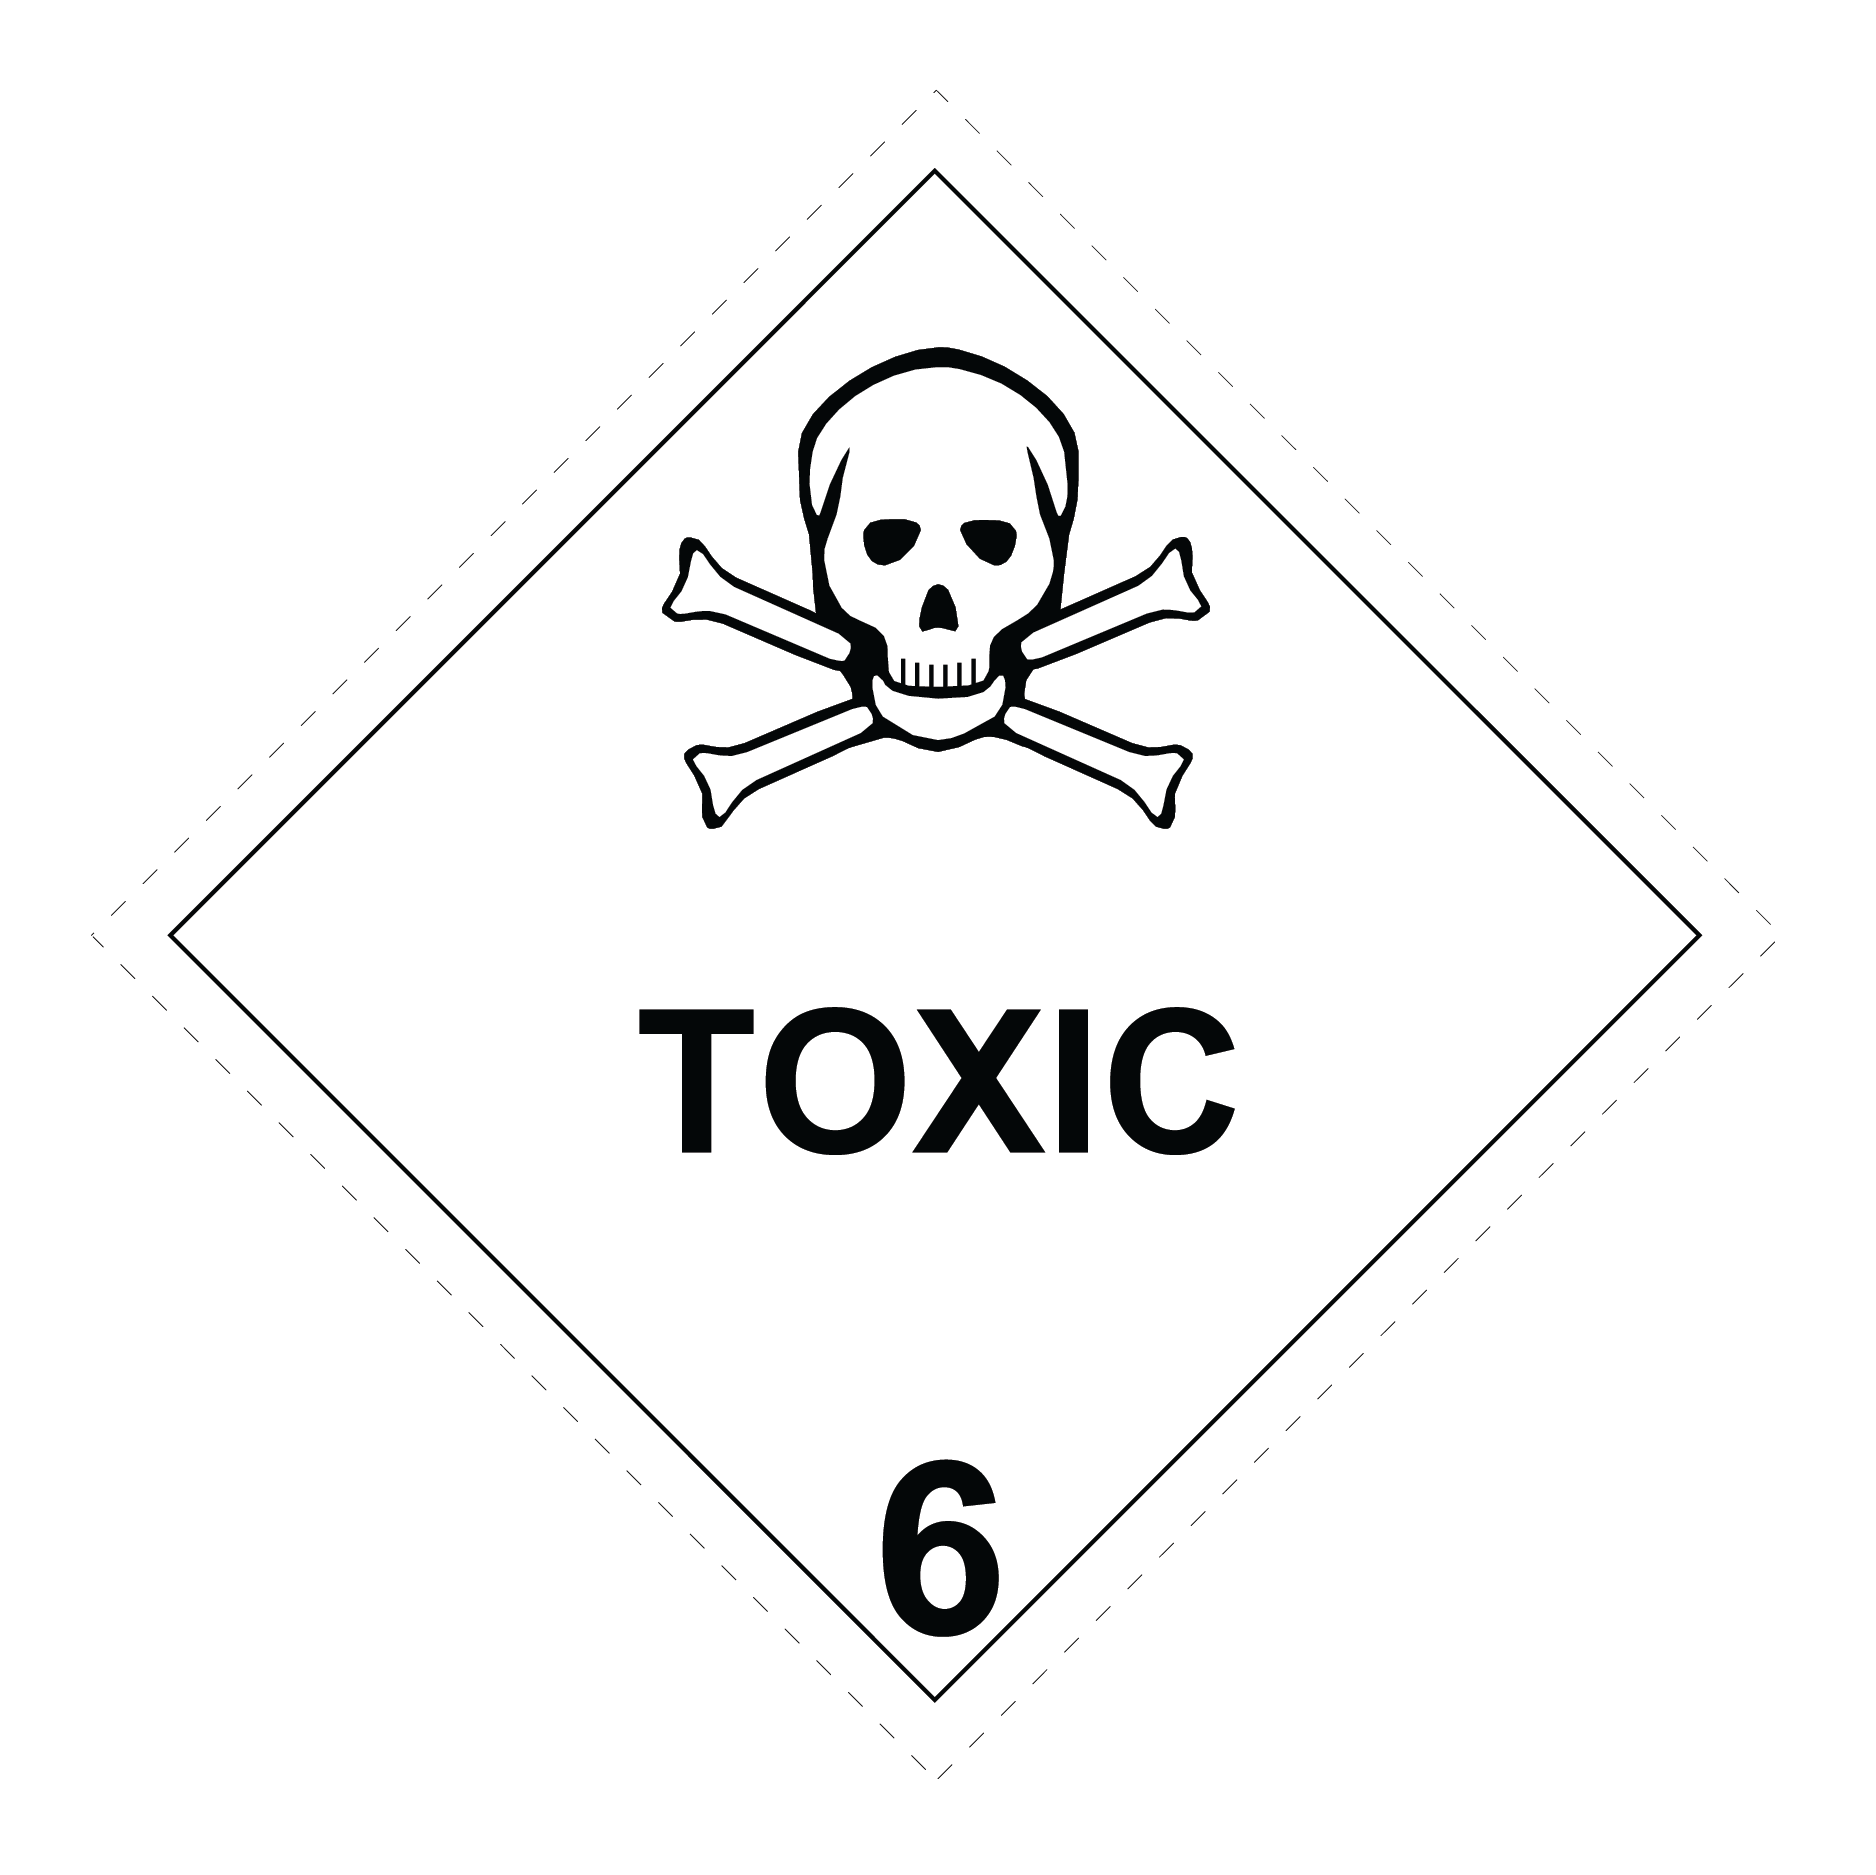 Compliant_6 Toxic Substance